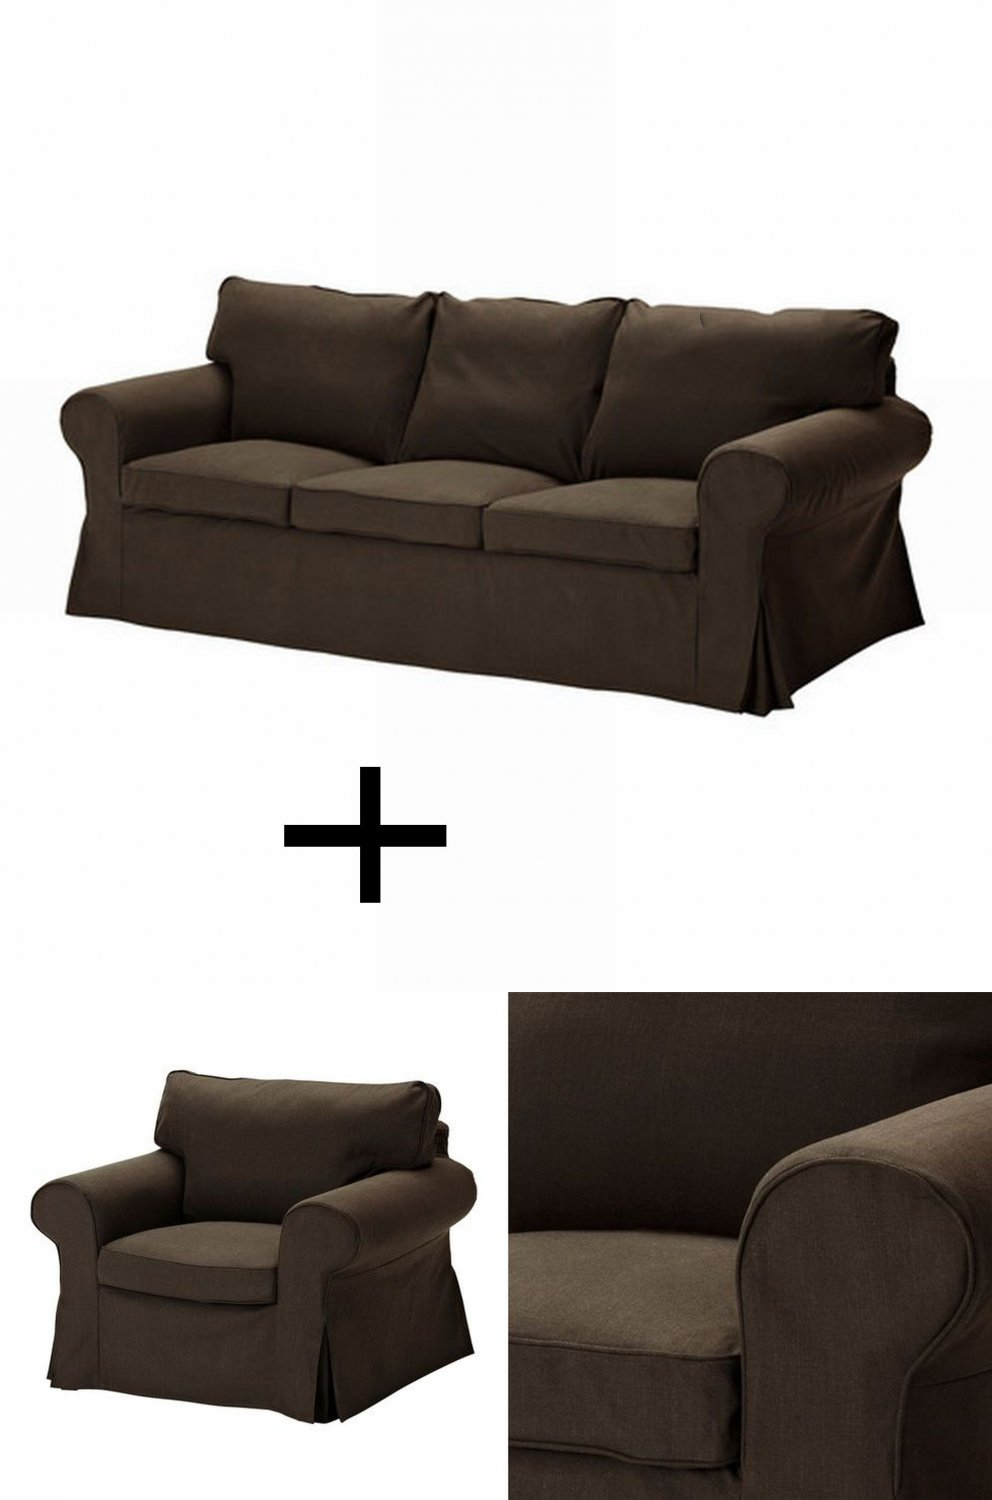 ikea ektorp 3 seat sofa and armchair slipcover set covers svanby brown discontinued. Black Bedroom Furniture Sets. Home Design Ideas